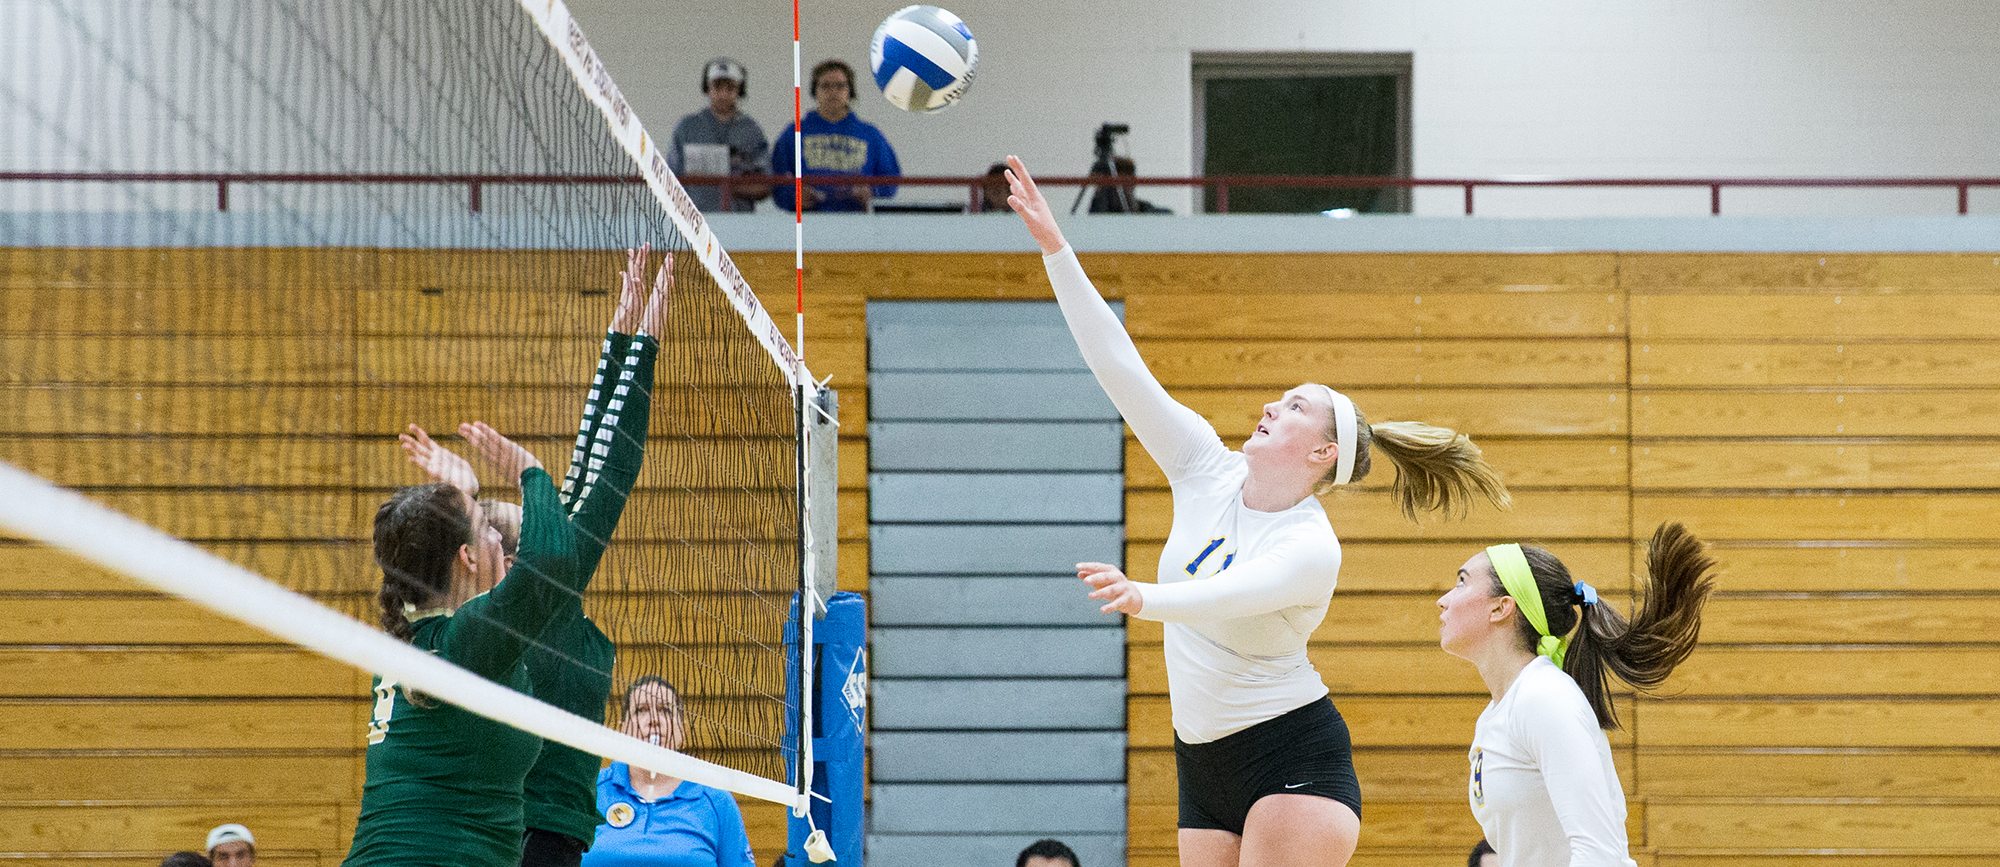 Junior Cassie Holmes recorded a career-high 14 kills in Western New England's 3-1 win at Mount Holyoke on Friday night. (Photo by Chris Marion)